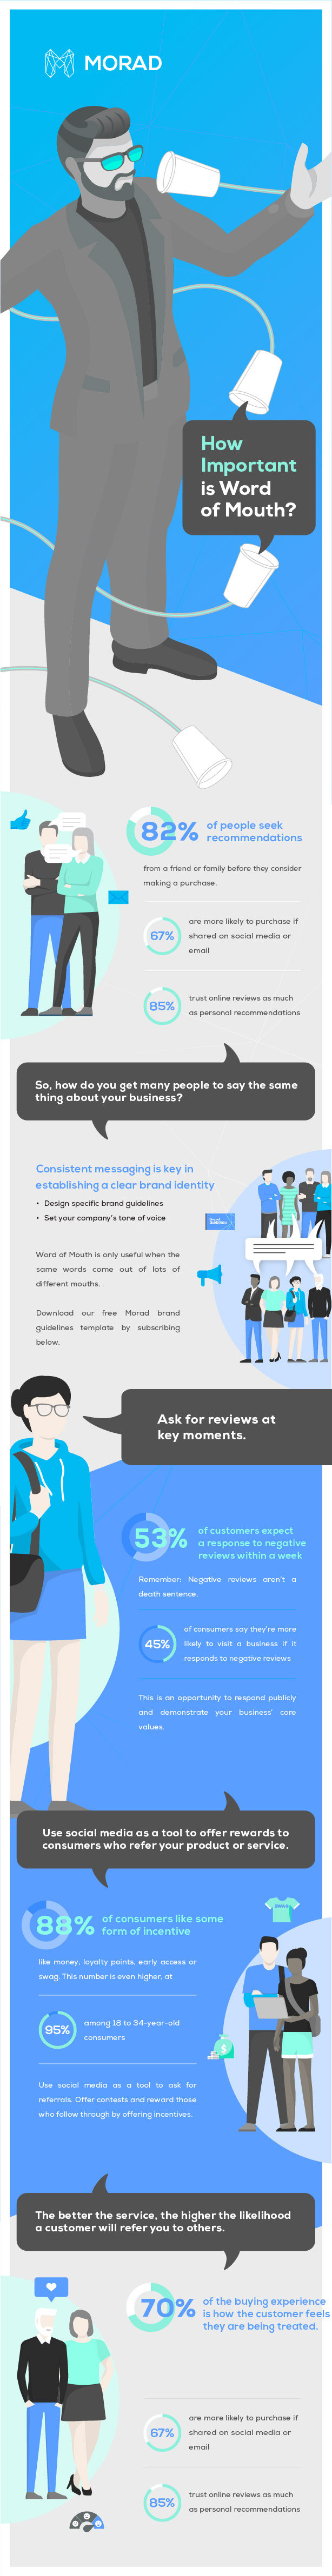 Infographic-Word-of-Mouth-Morad-01.jpg